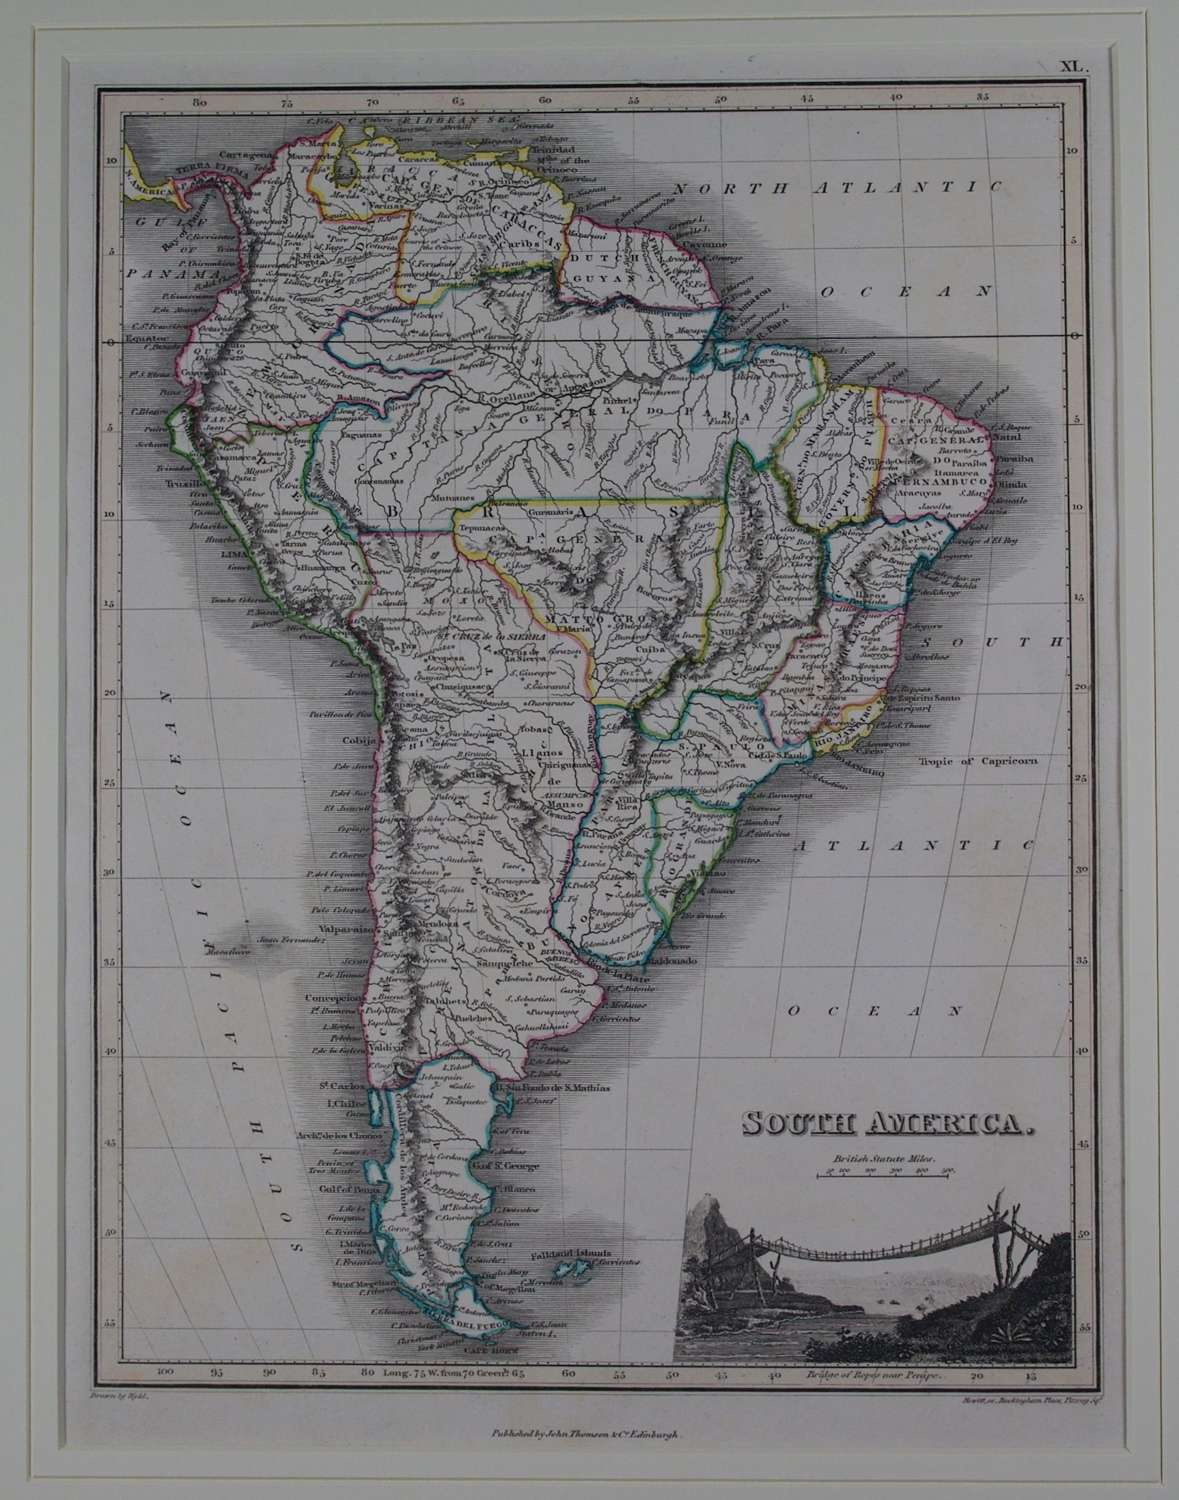 South America by J Wyld and NR Hewitt